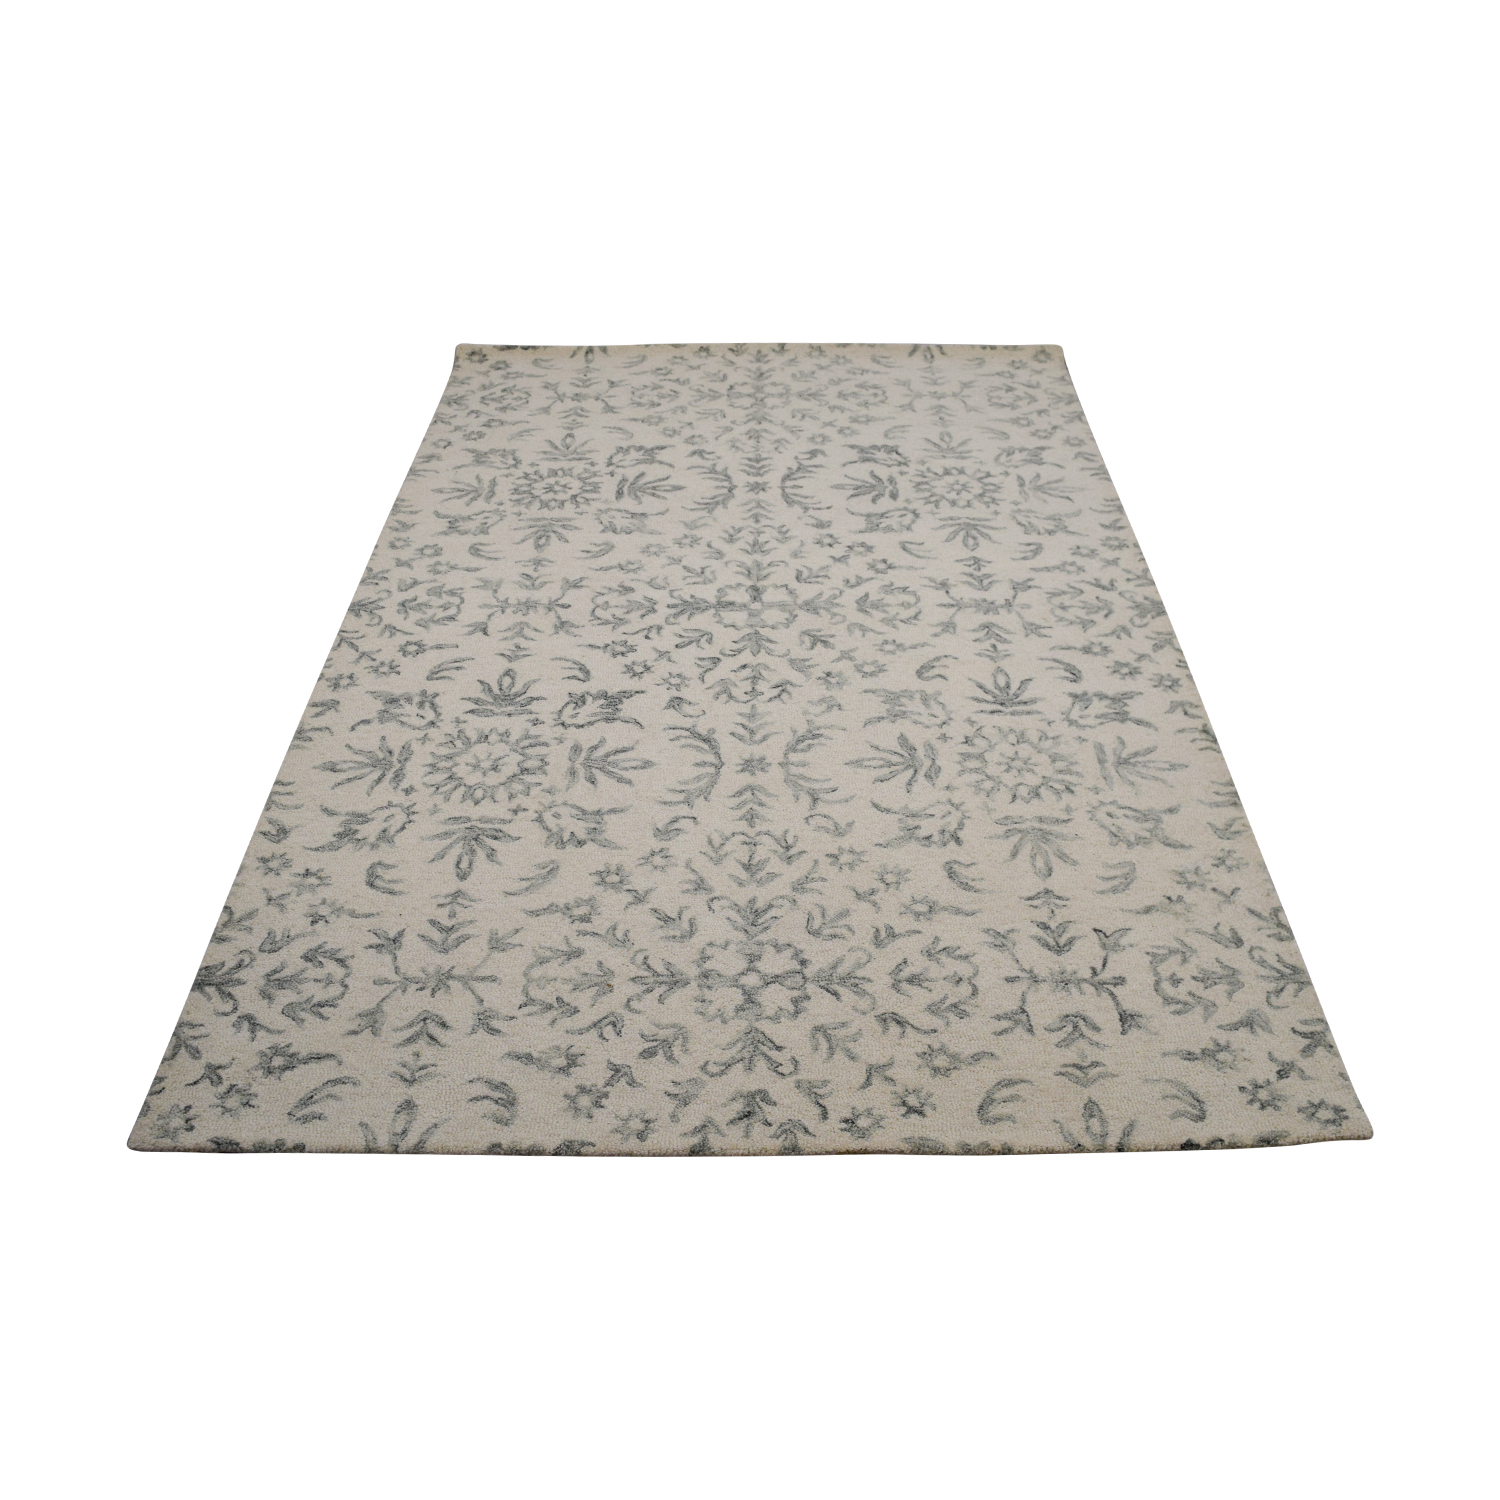 rugs light rug reviews gray area outdoor allmodern indooroutdoor jacklyn pdp indoor